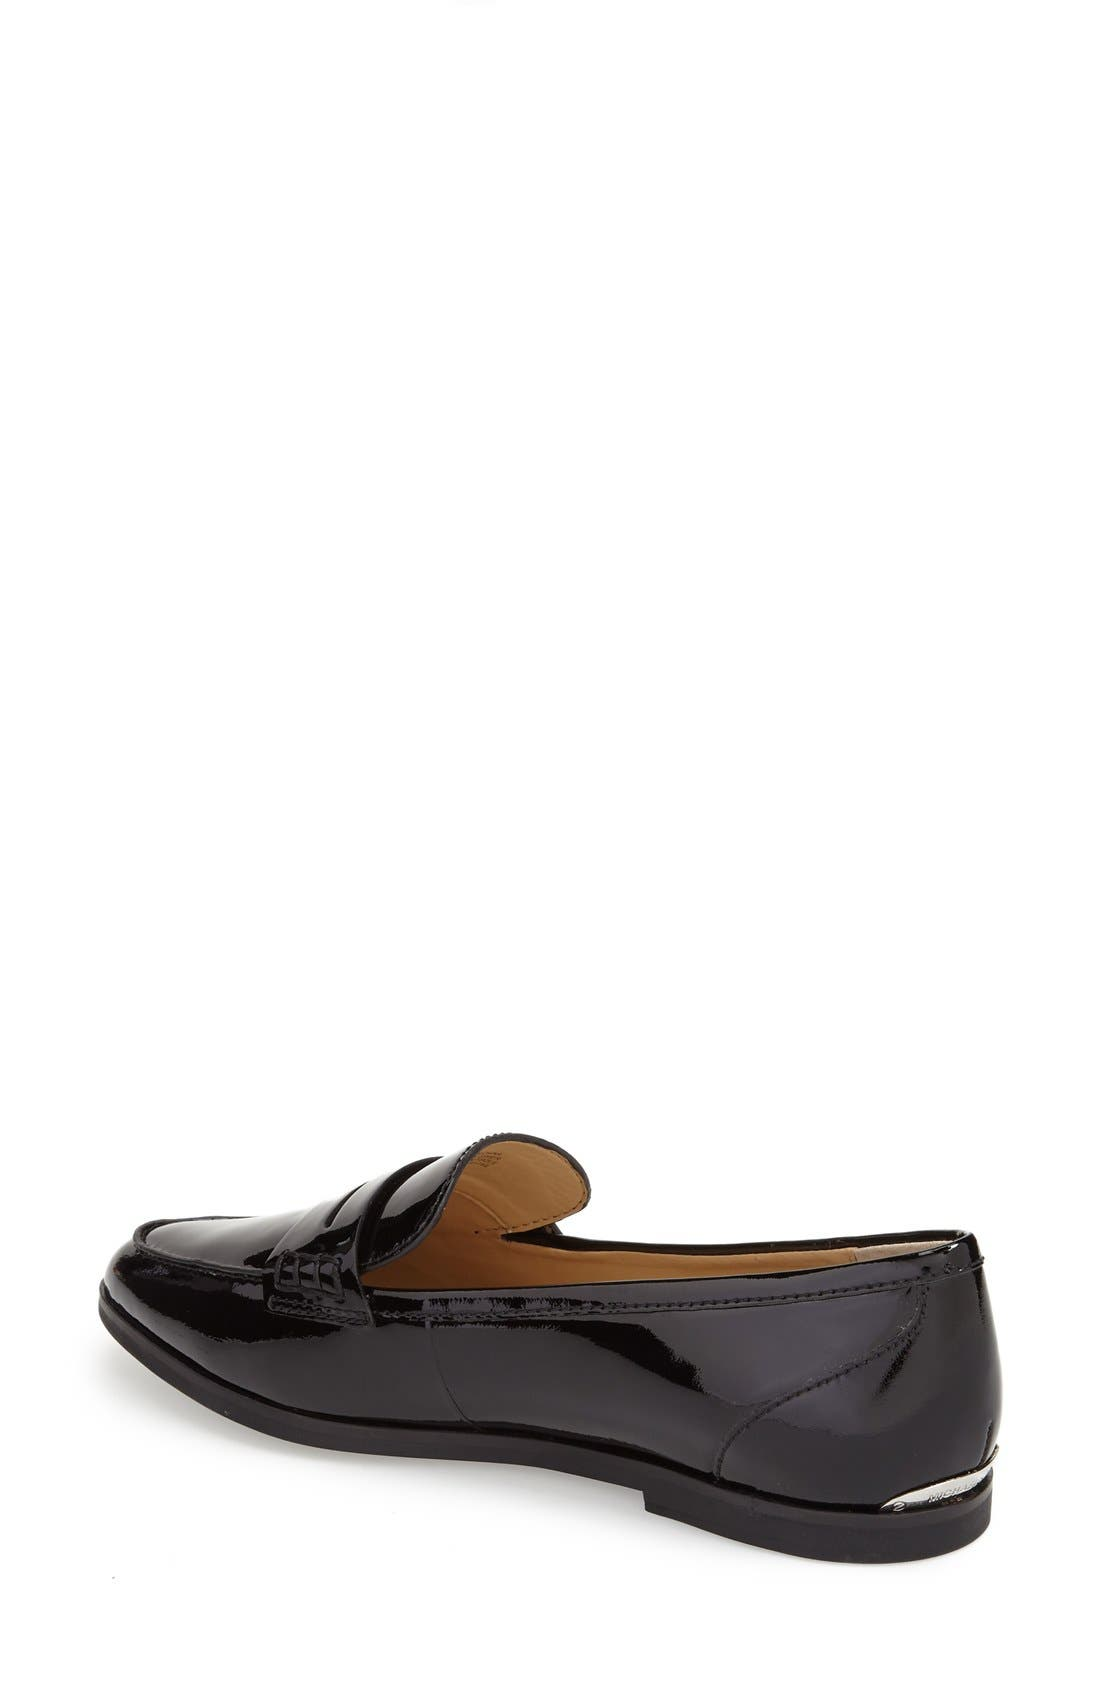 Alternate Image 2  - MICHAEL Michael Kors 'Connor' Penny Loafer (Women)